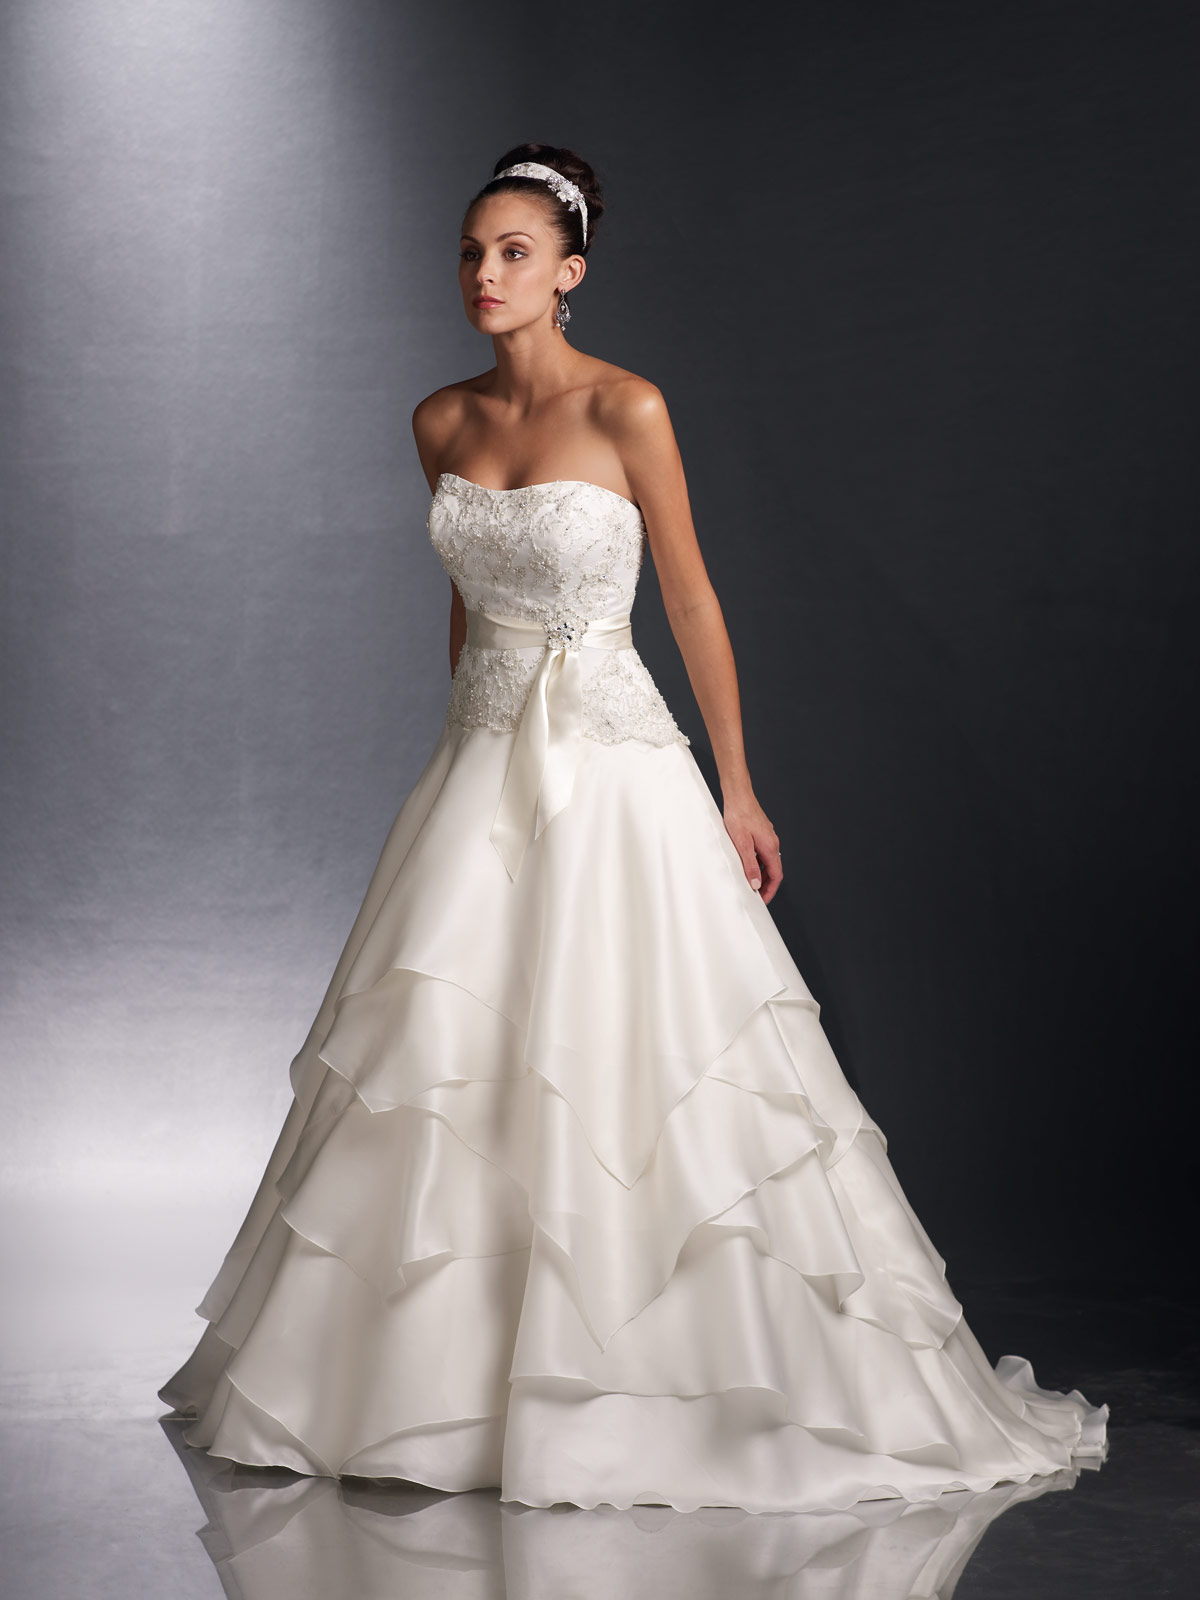 James Clifford Wedding Dresses The Specialiststhe